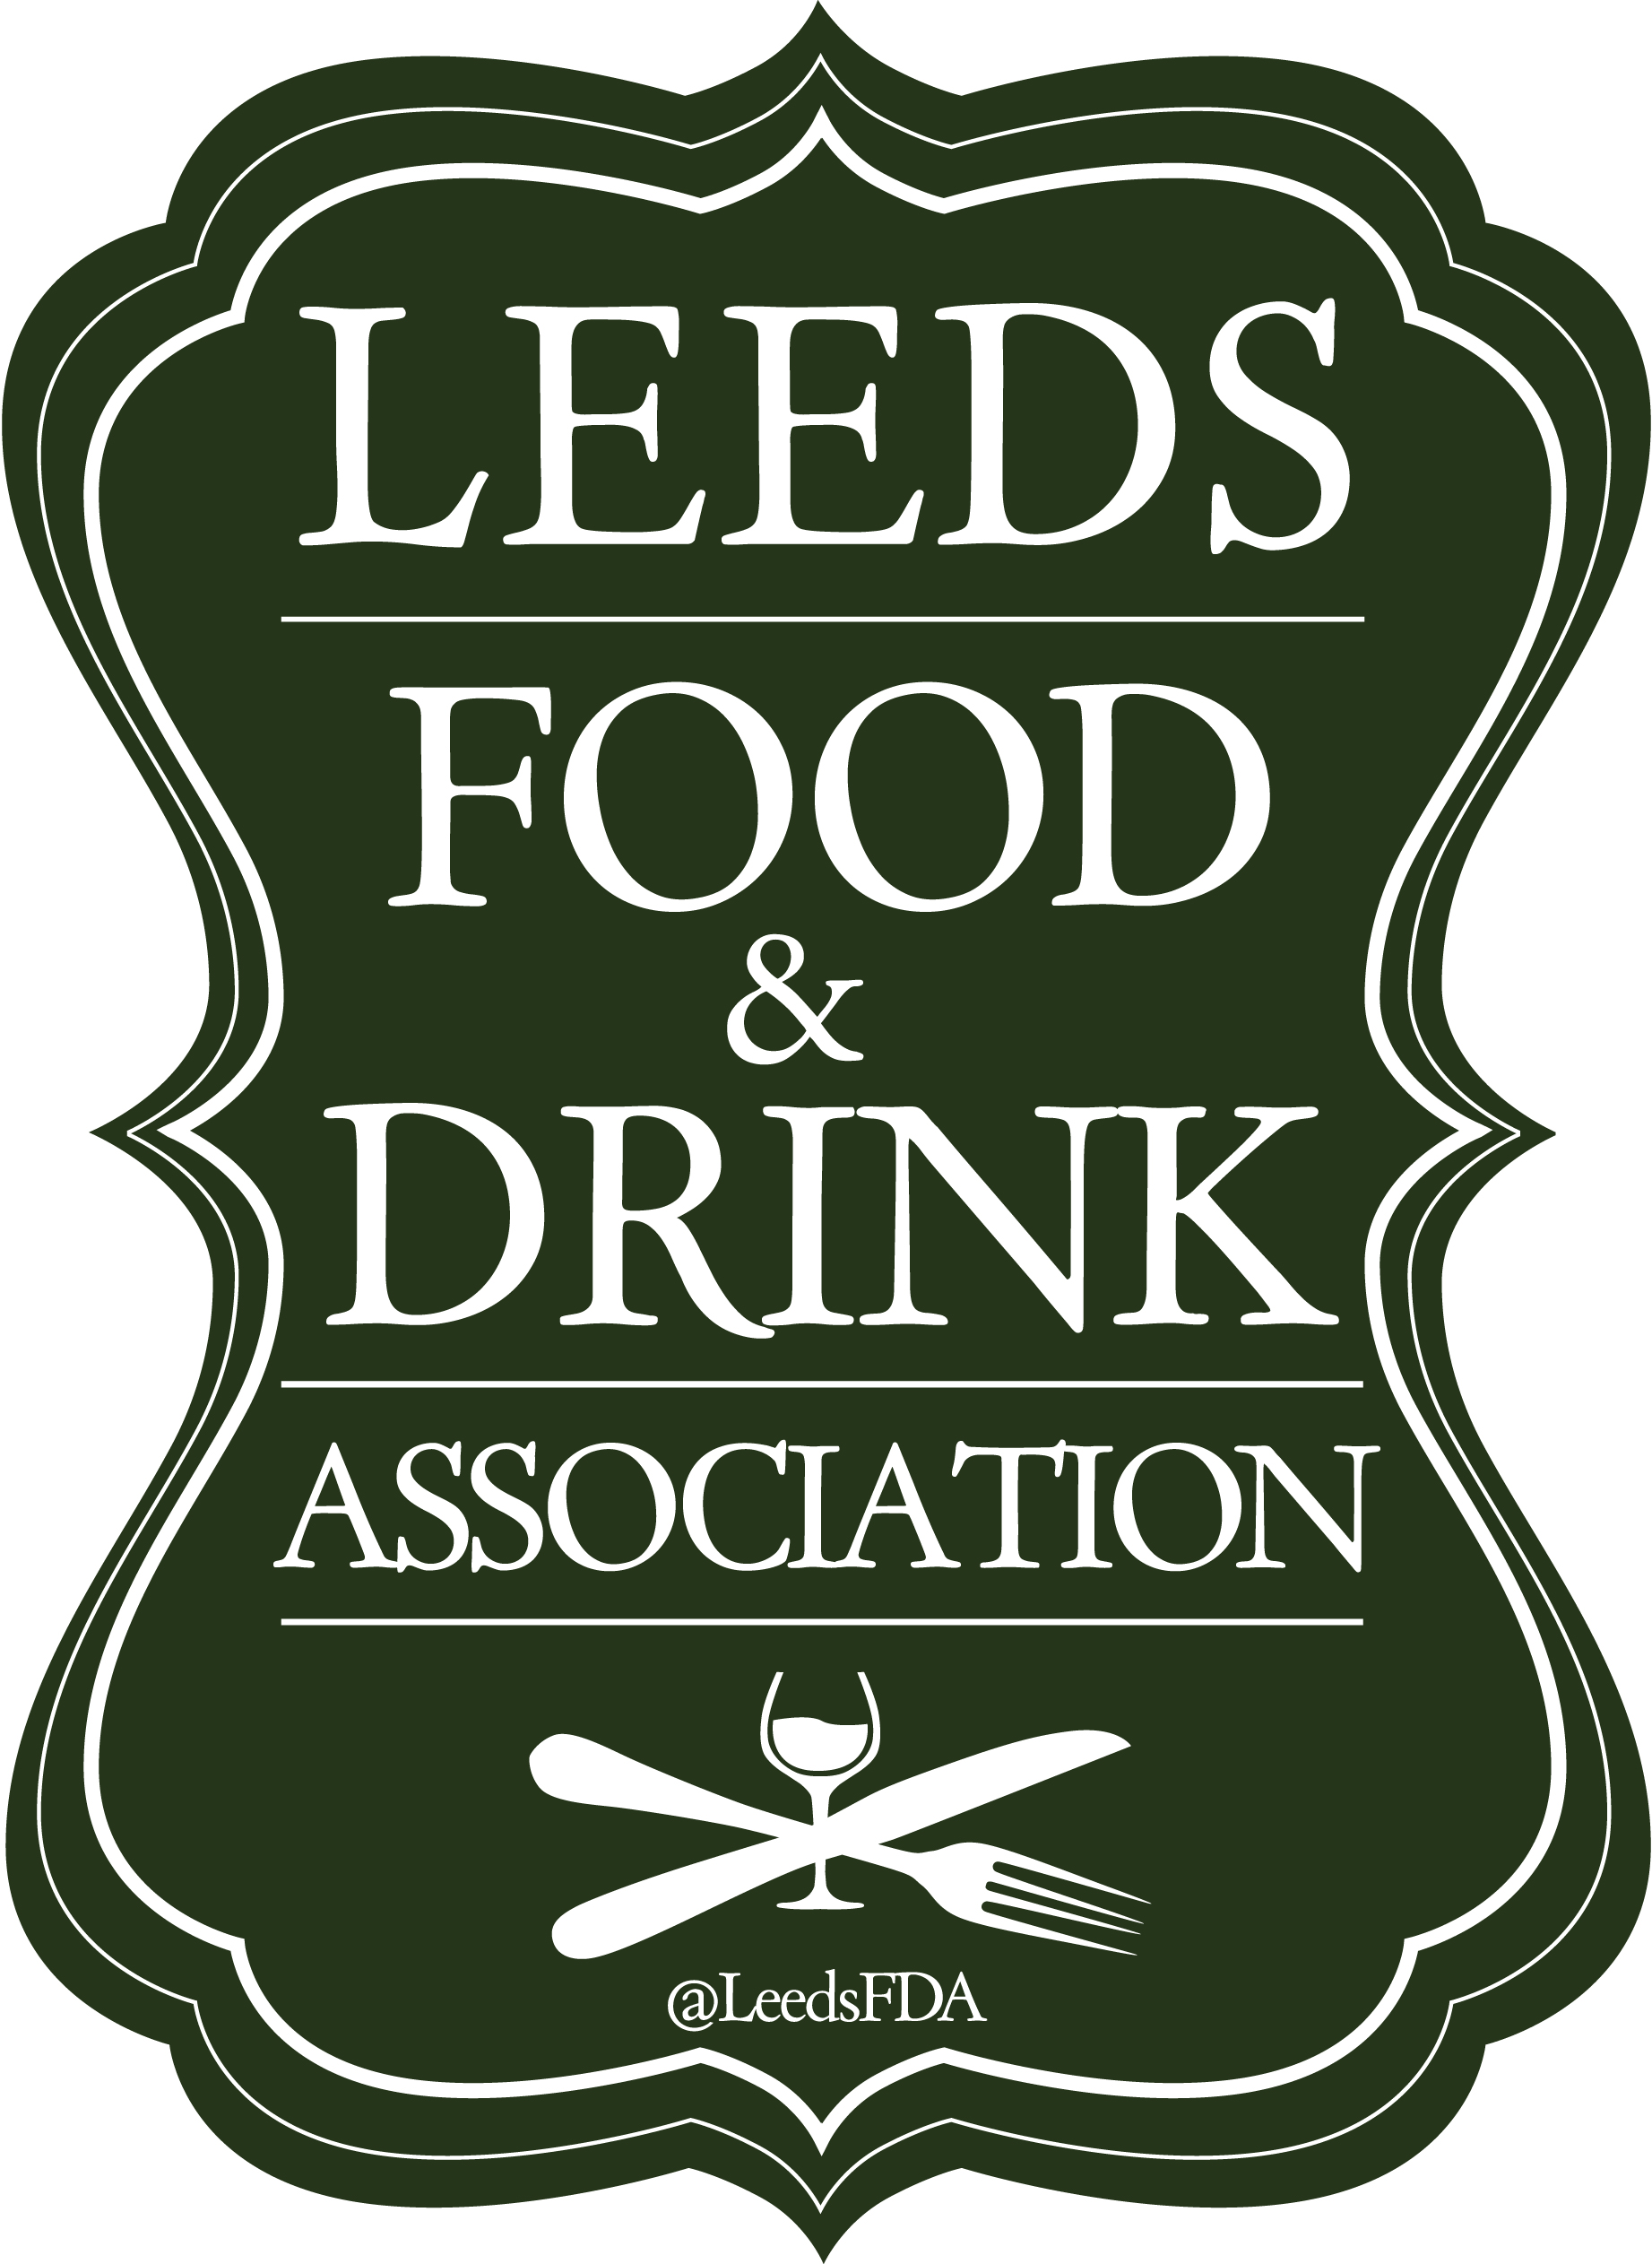 I'm proud to be a member of the Leeds Food and Drink Association